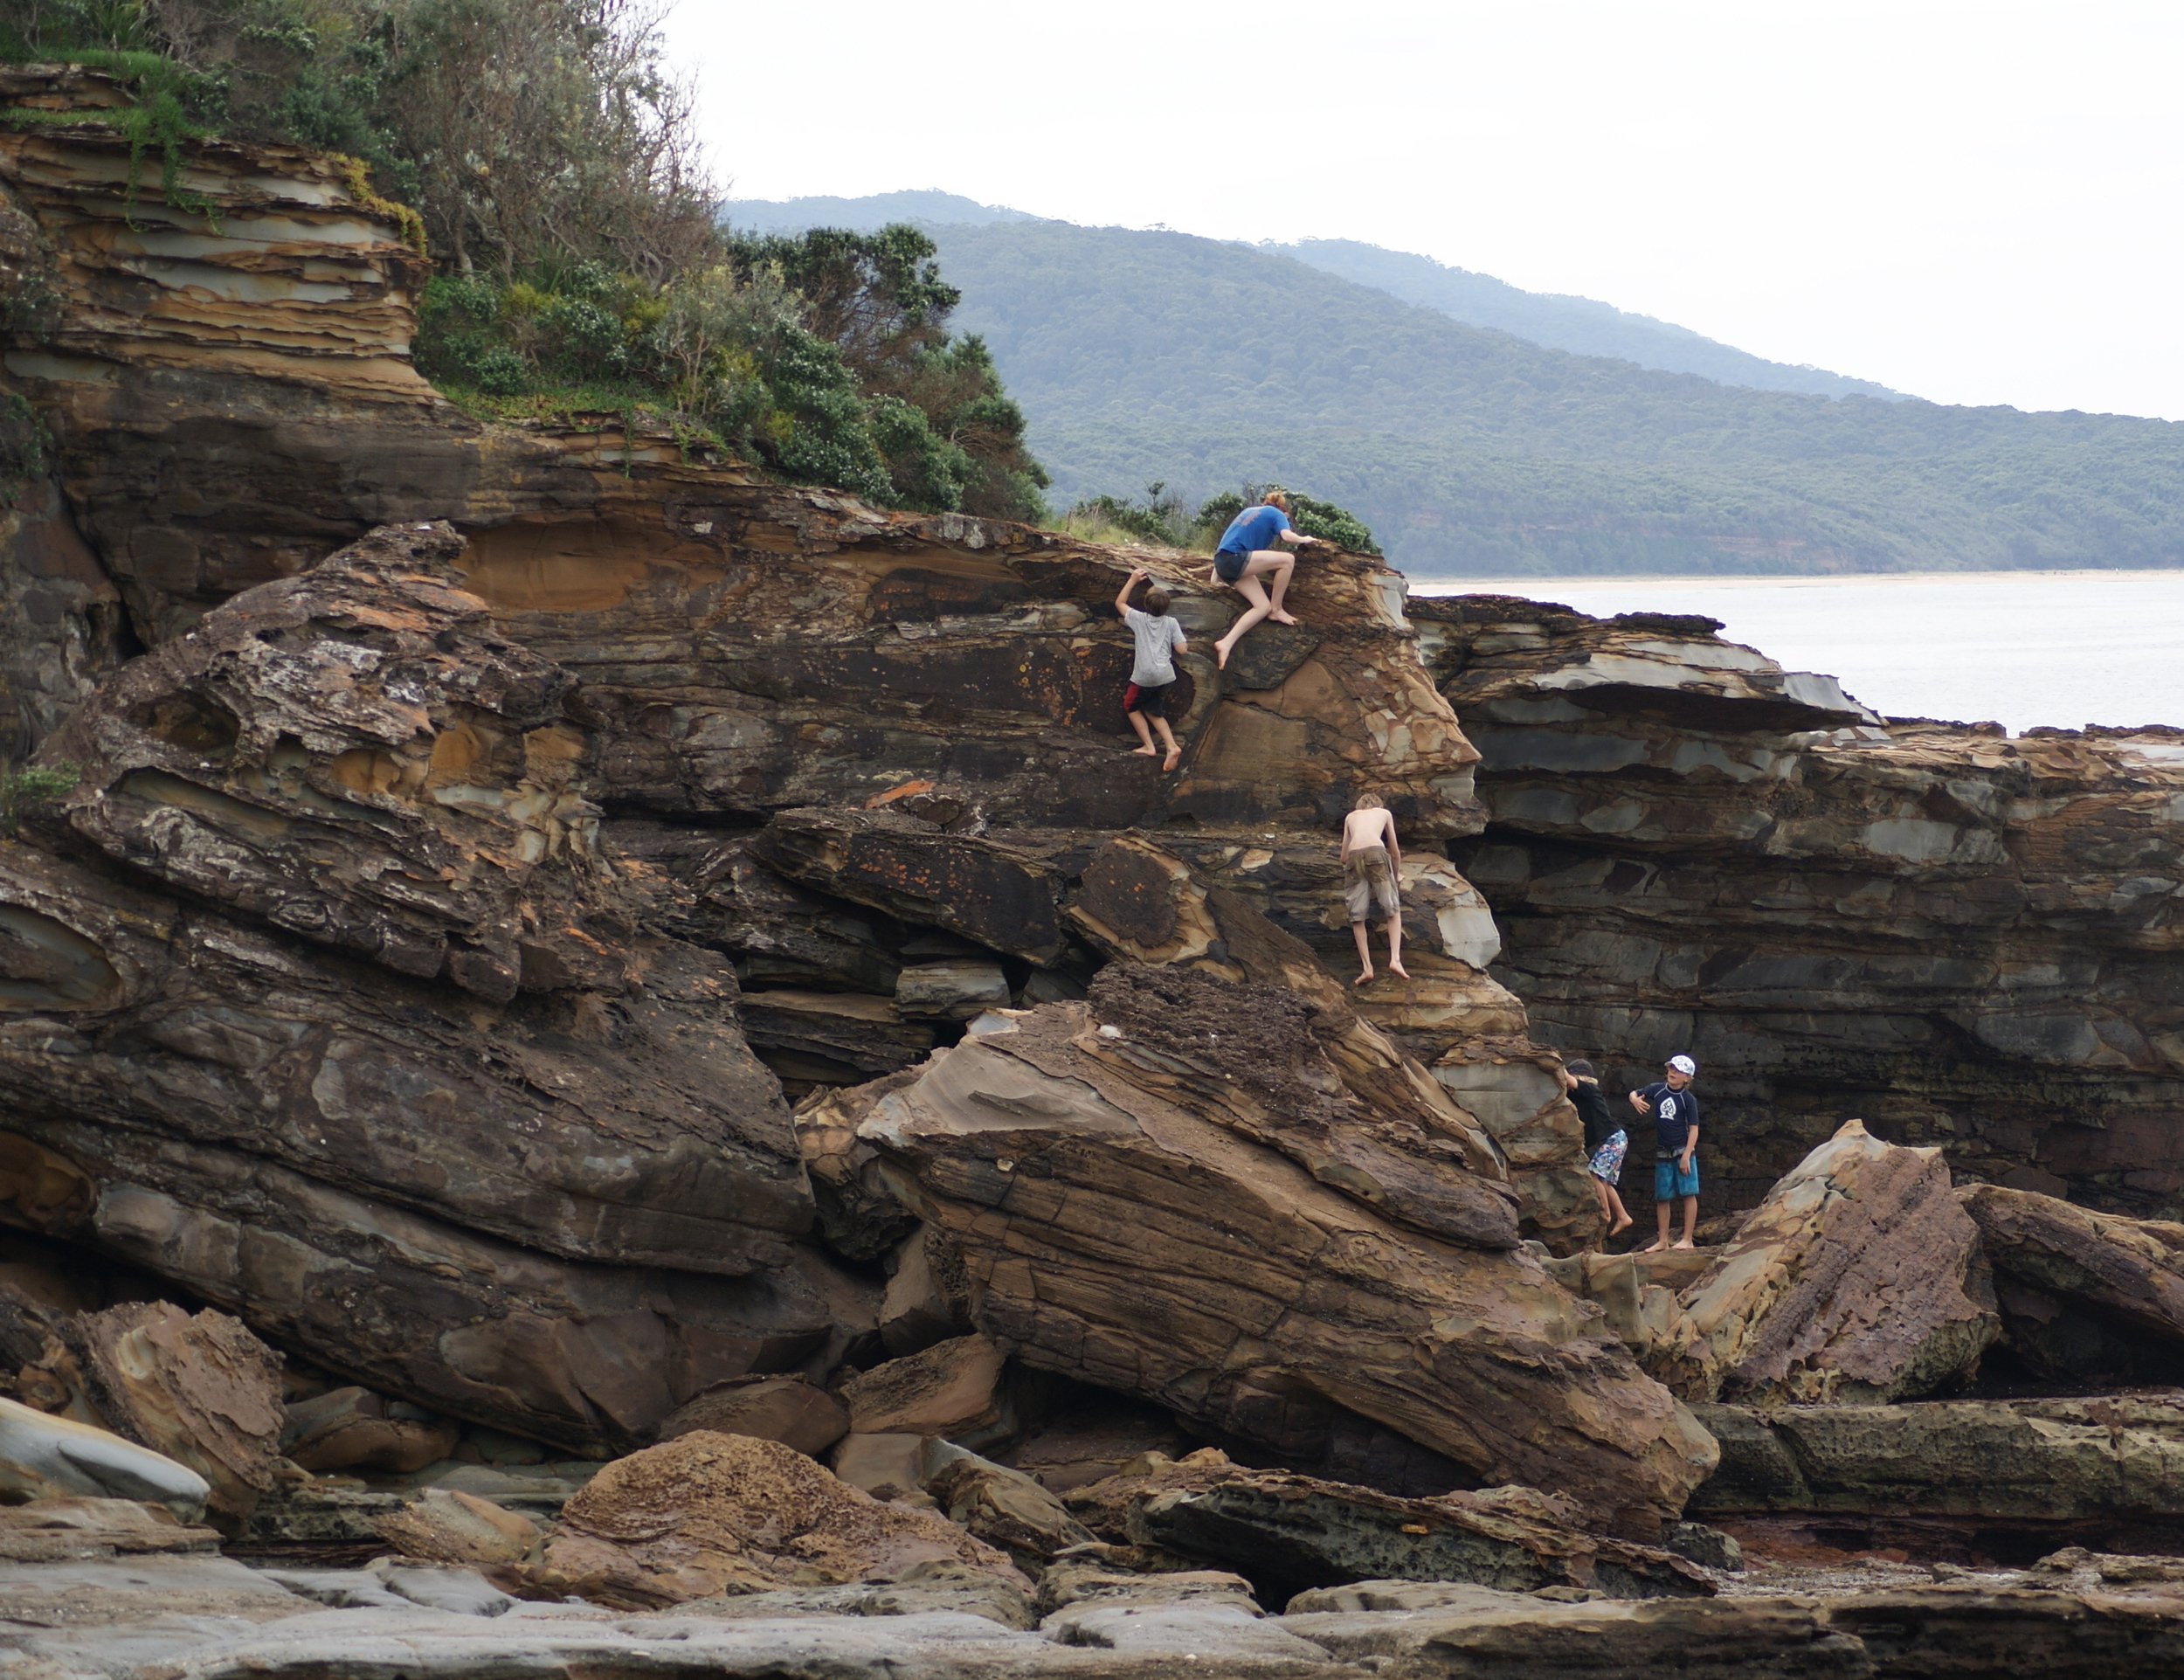 Rock climbing at South Durras